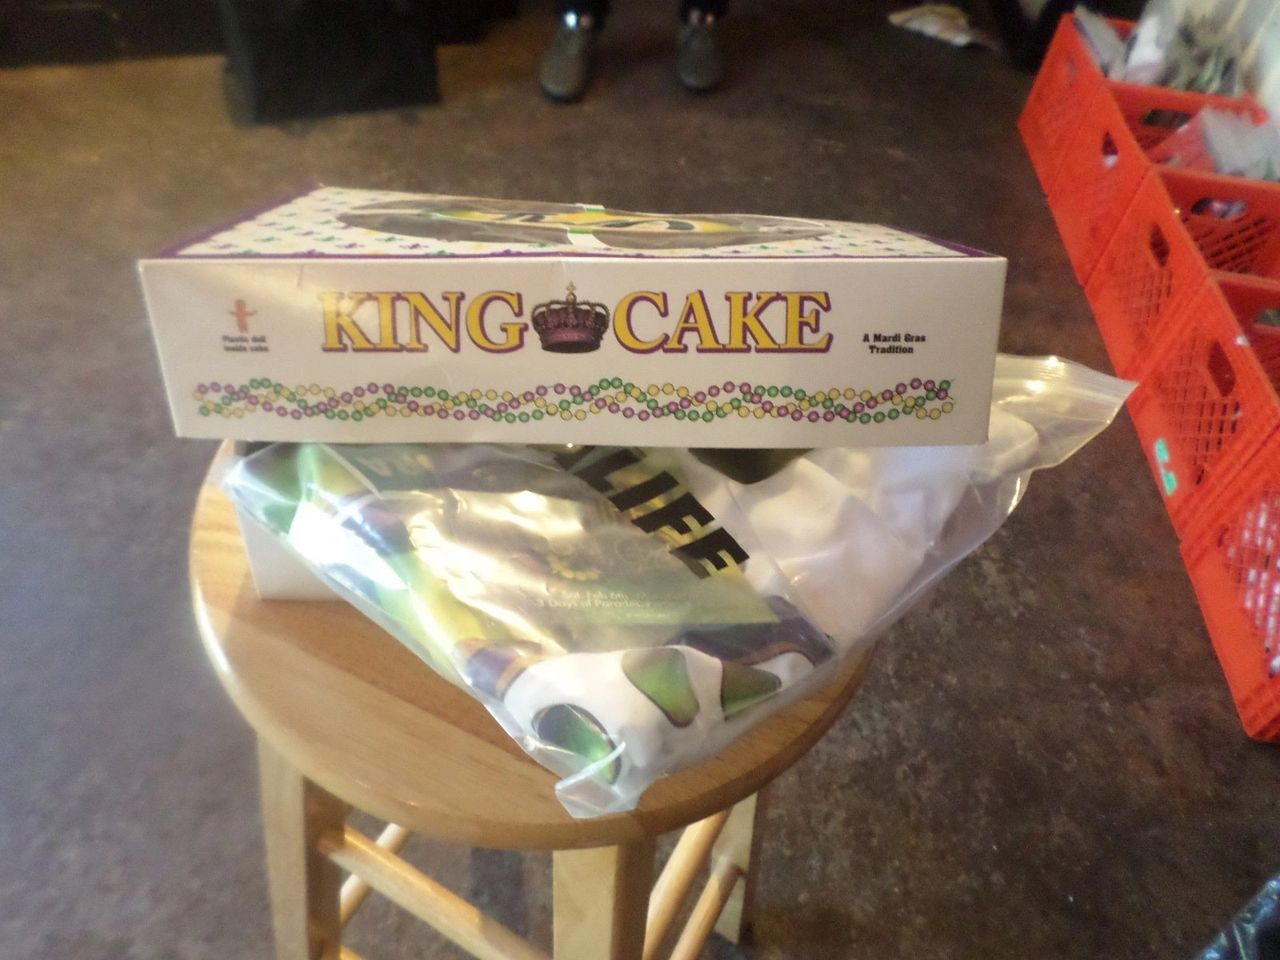 During Mardi Gras, the merch is king cake themed